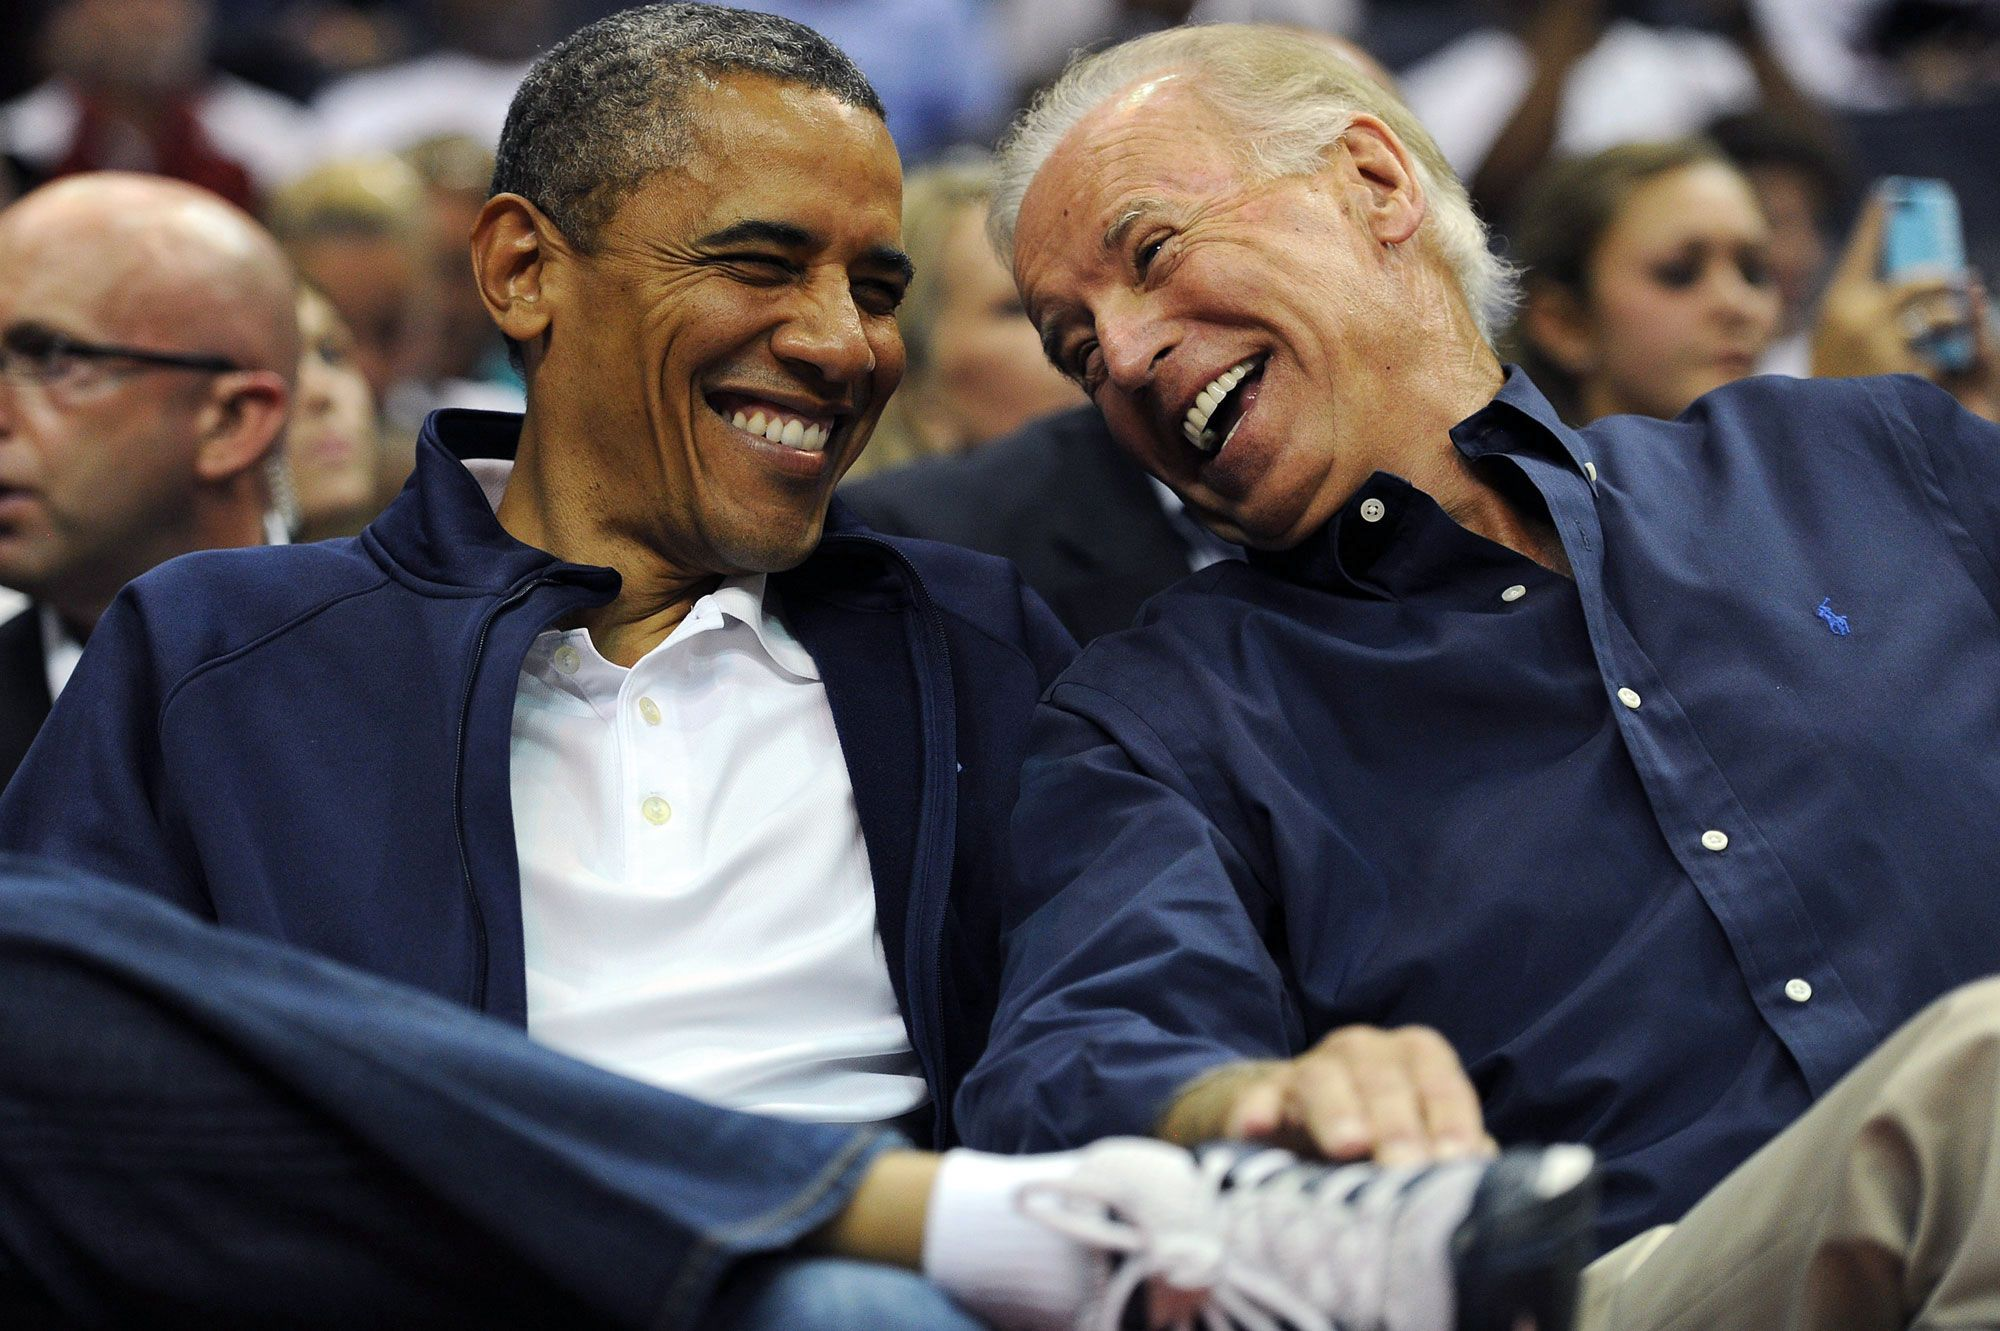 President Obama and Joe Biden's Bromance in 24 Photos